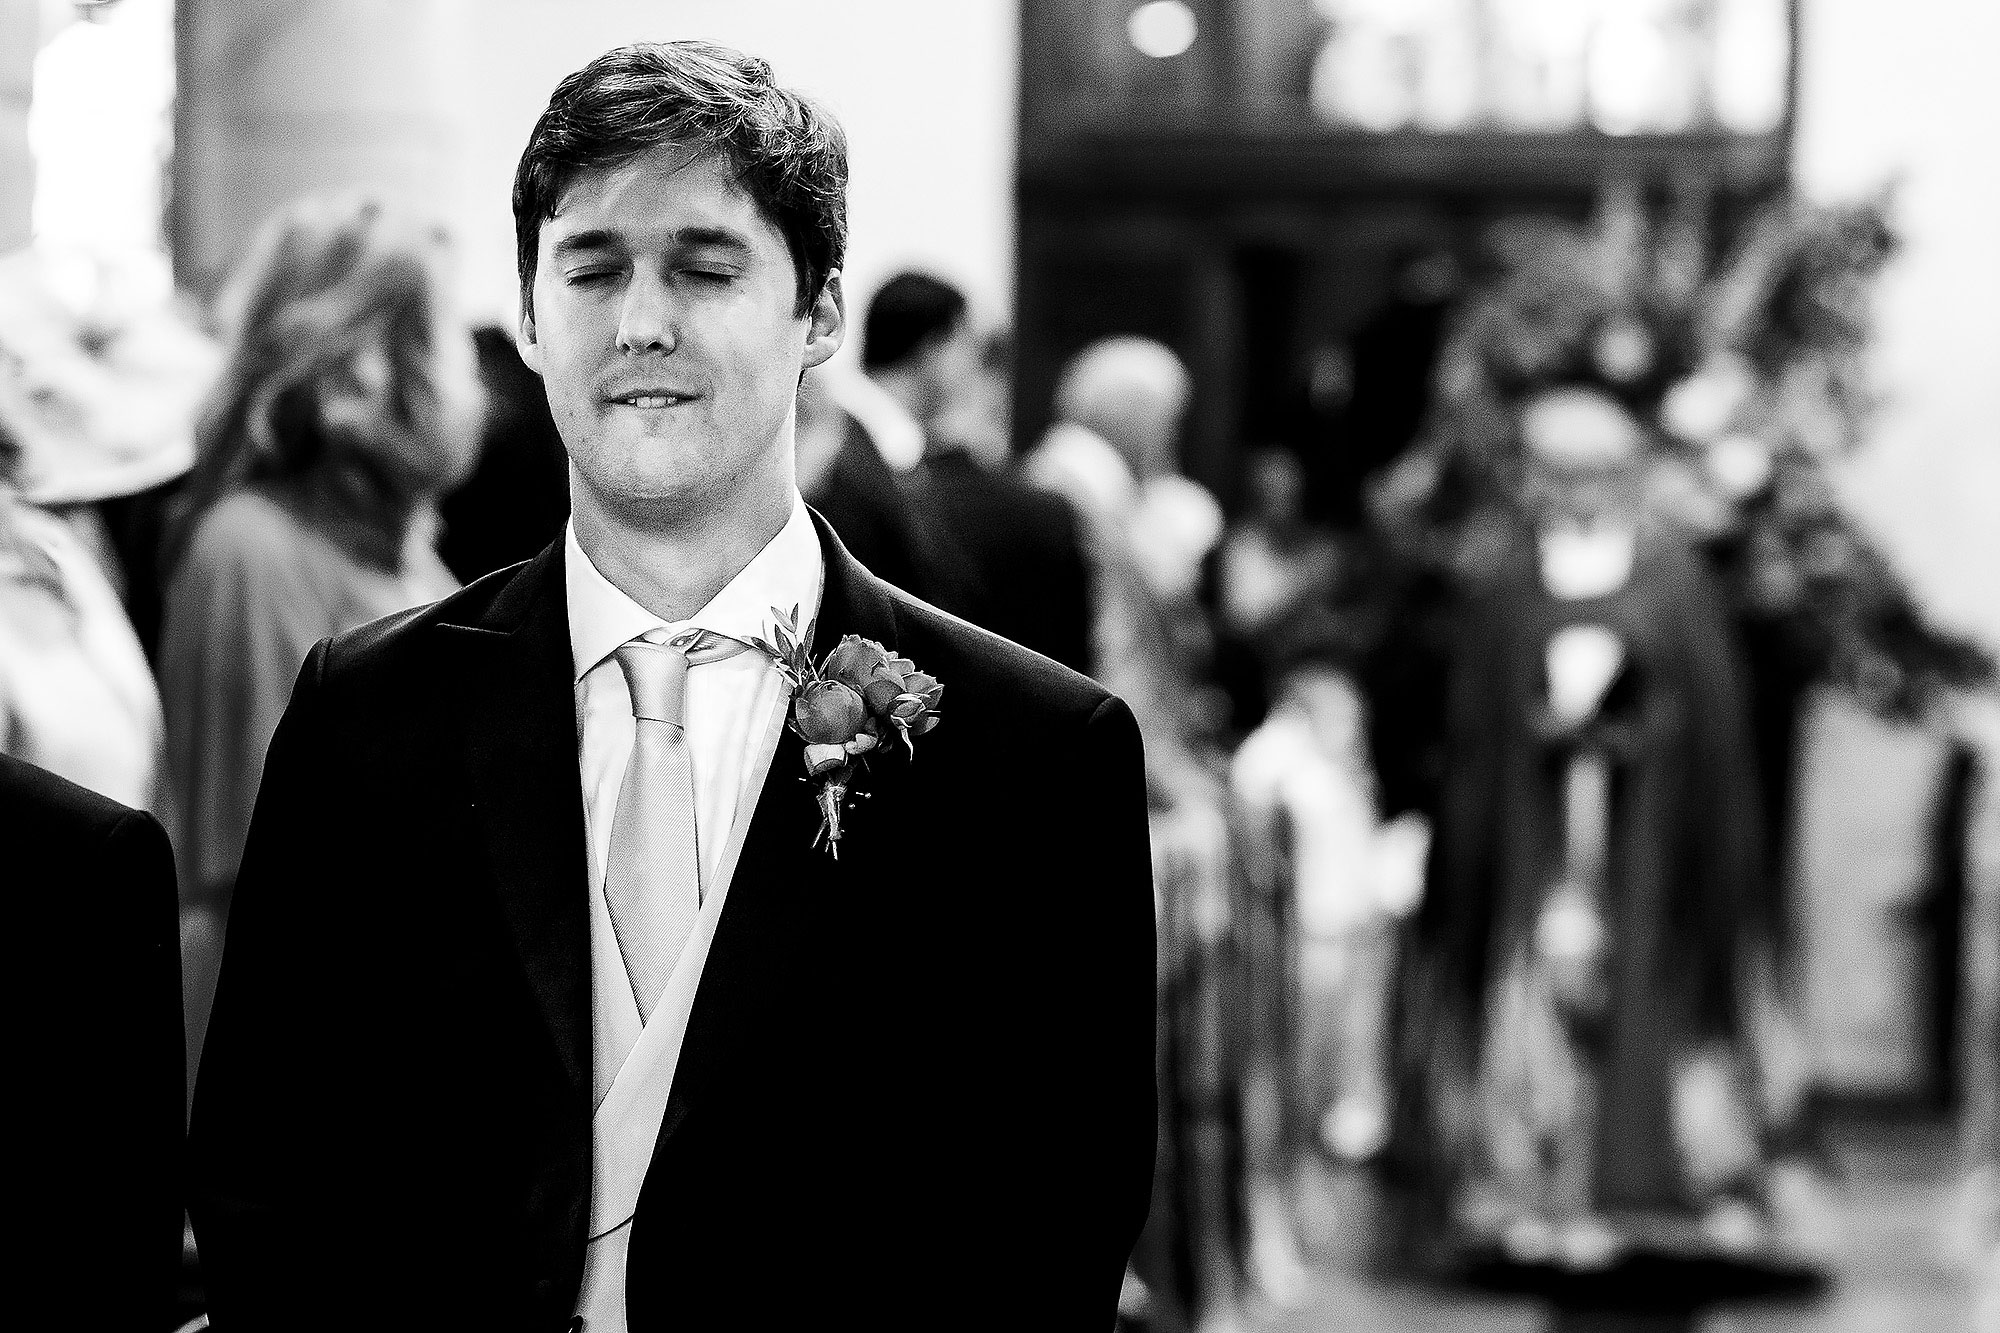 Groom closing eyes and biting lip as he nervously waits at the top of the aisle in church | Lake District Wedding by Toni Darcy Photography